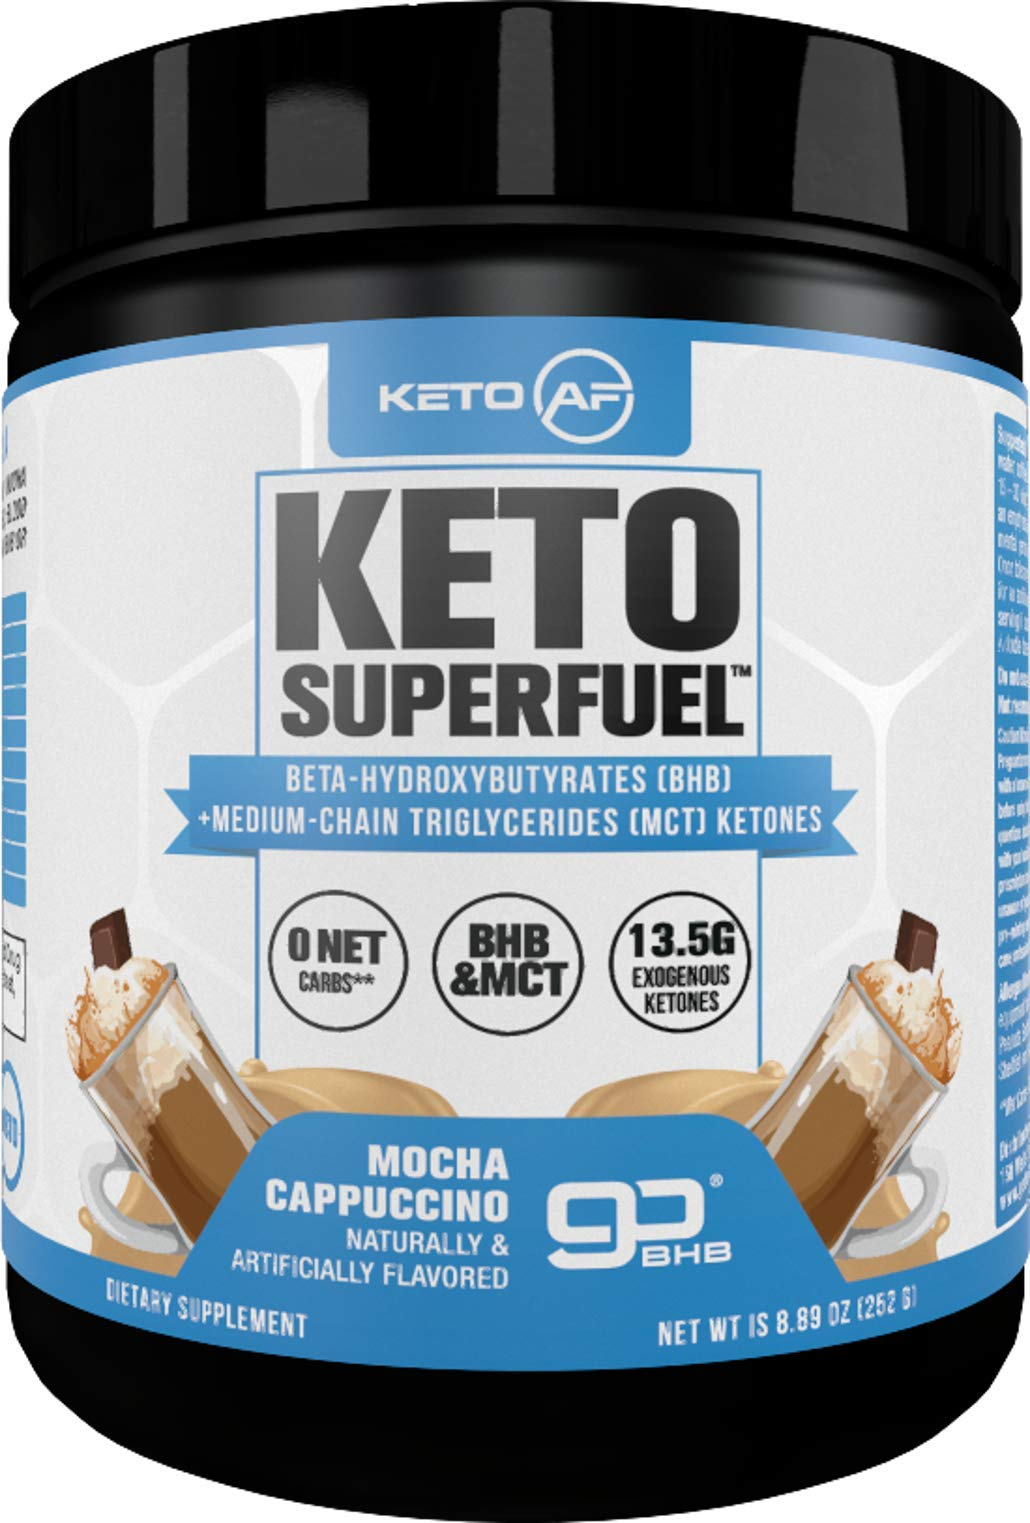 Keto AF Superfuel - Exogenous Ketones. BHB Salts and C8 Triglycerides (MCT Oil). Increase Performance, Get Into Ketosis + Enhance Mental Focus. (Mocha Cappuccino, 15 Servings)